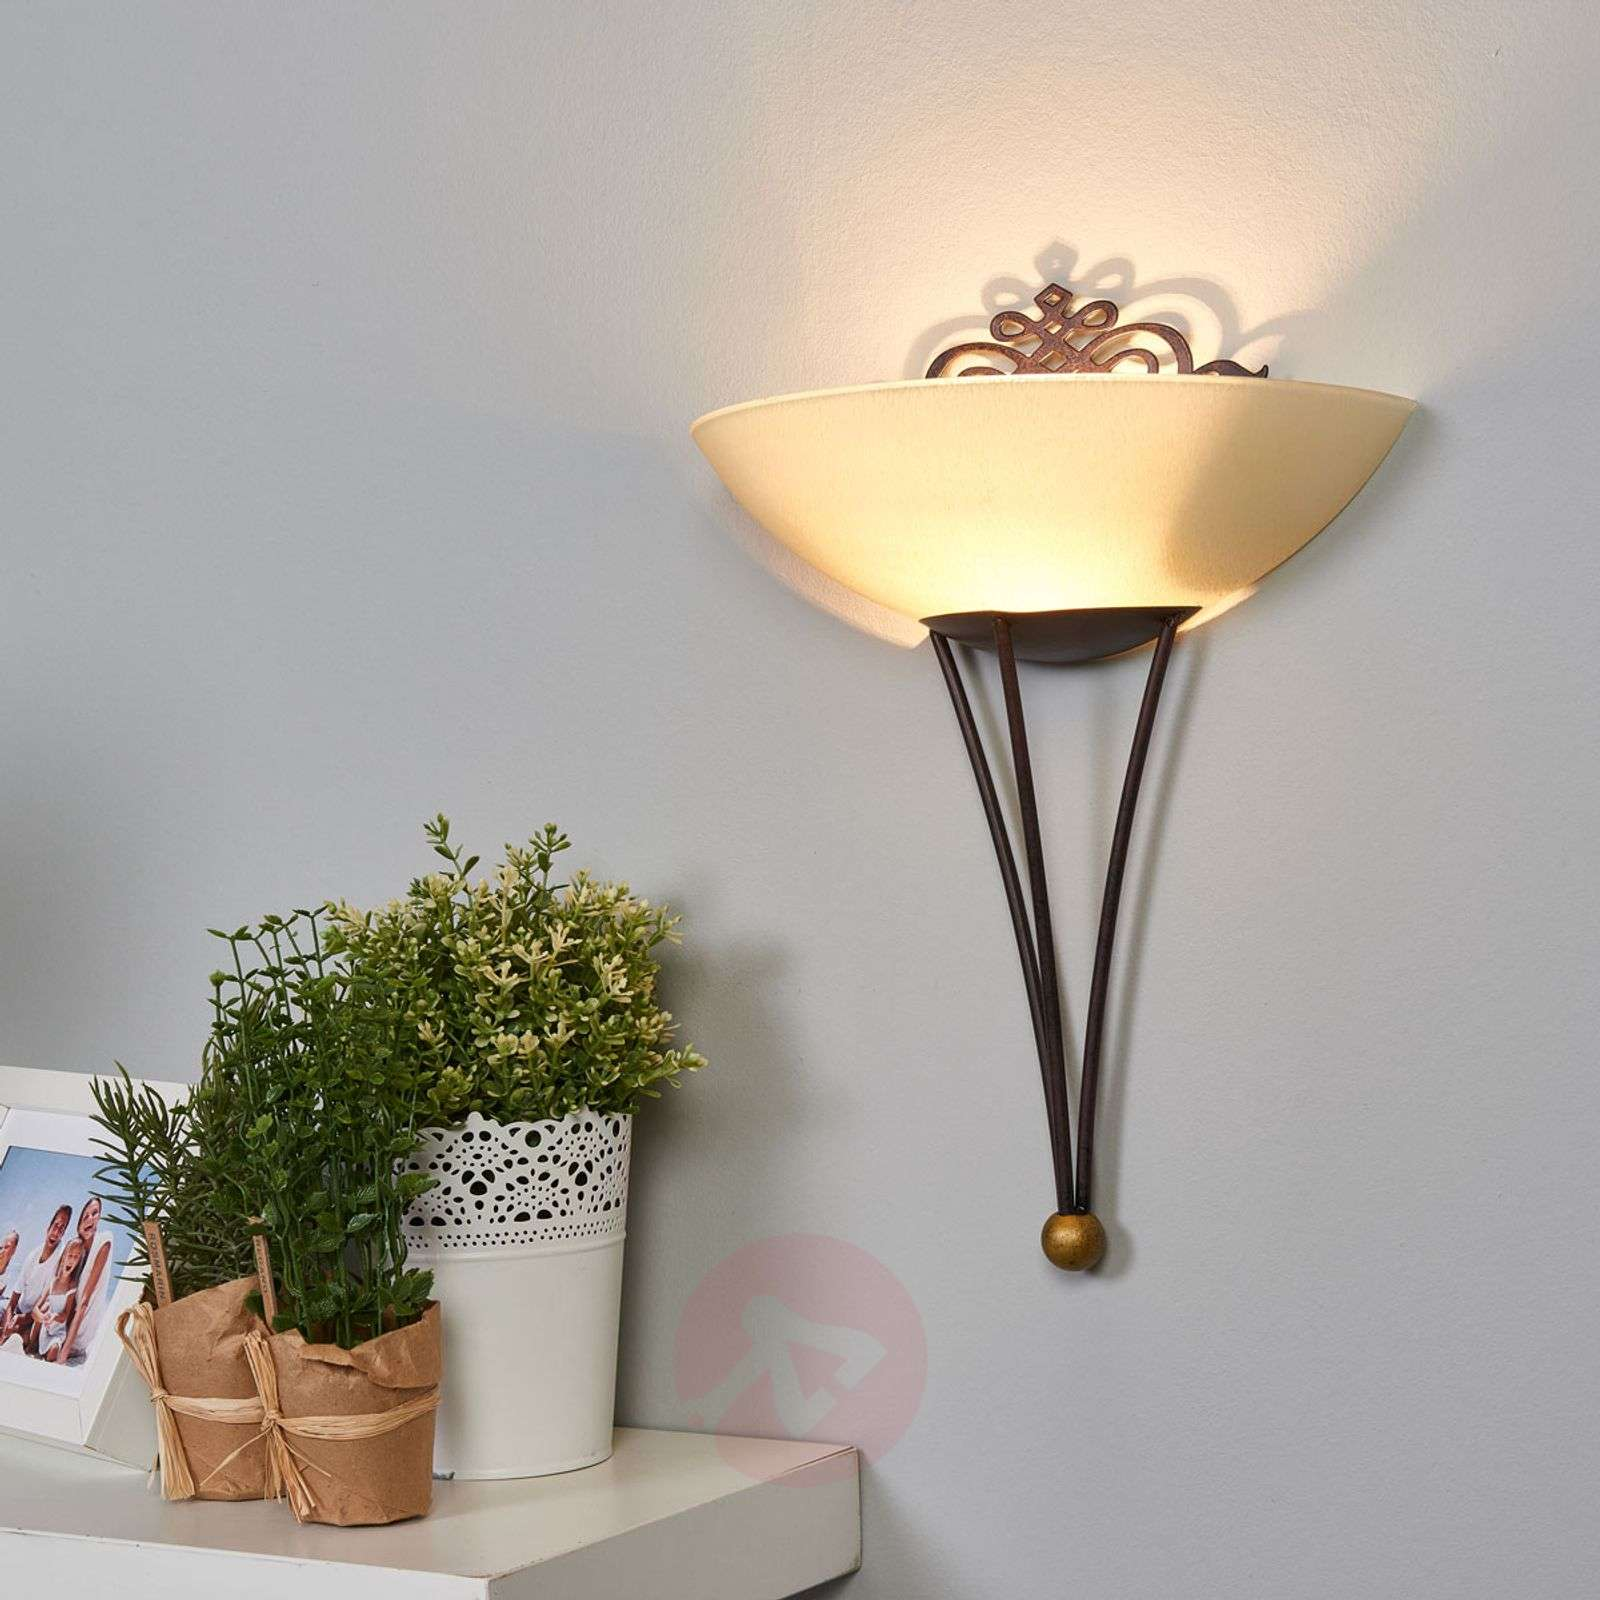 Decorative wall light Master with decoration-3001268-01